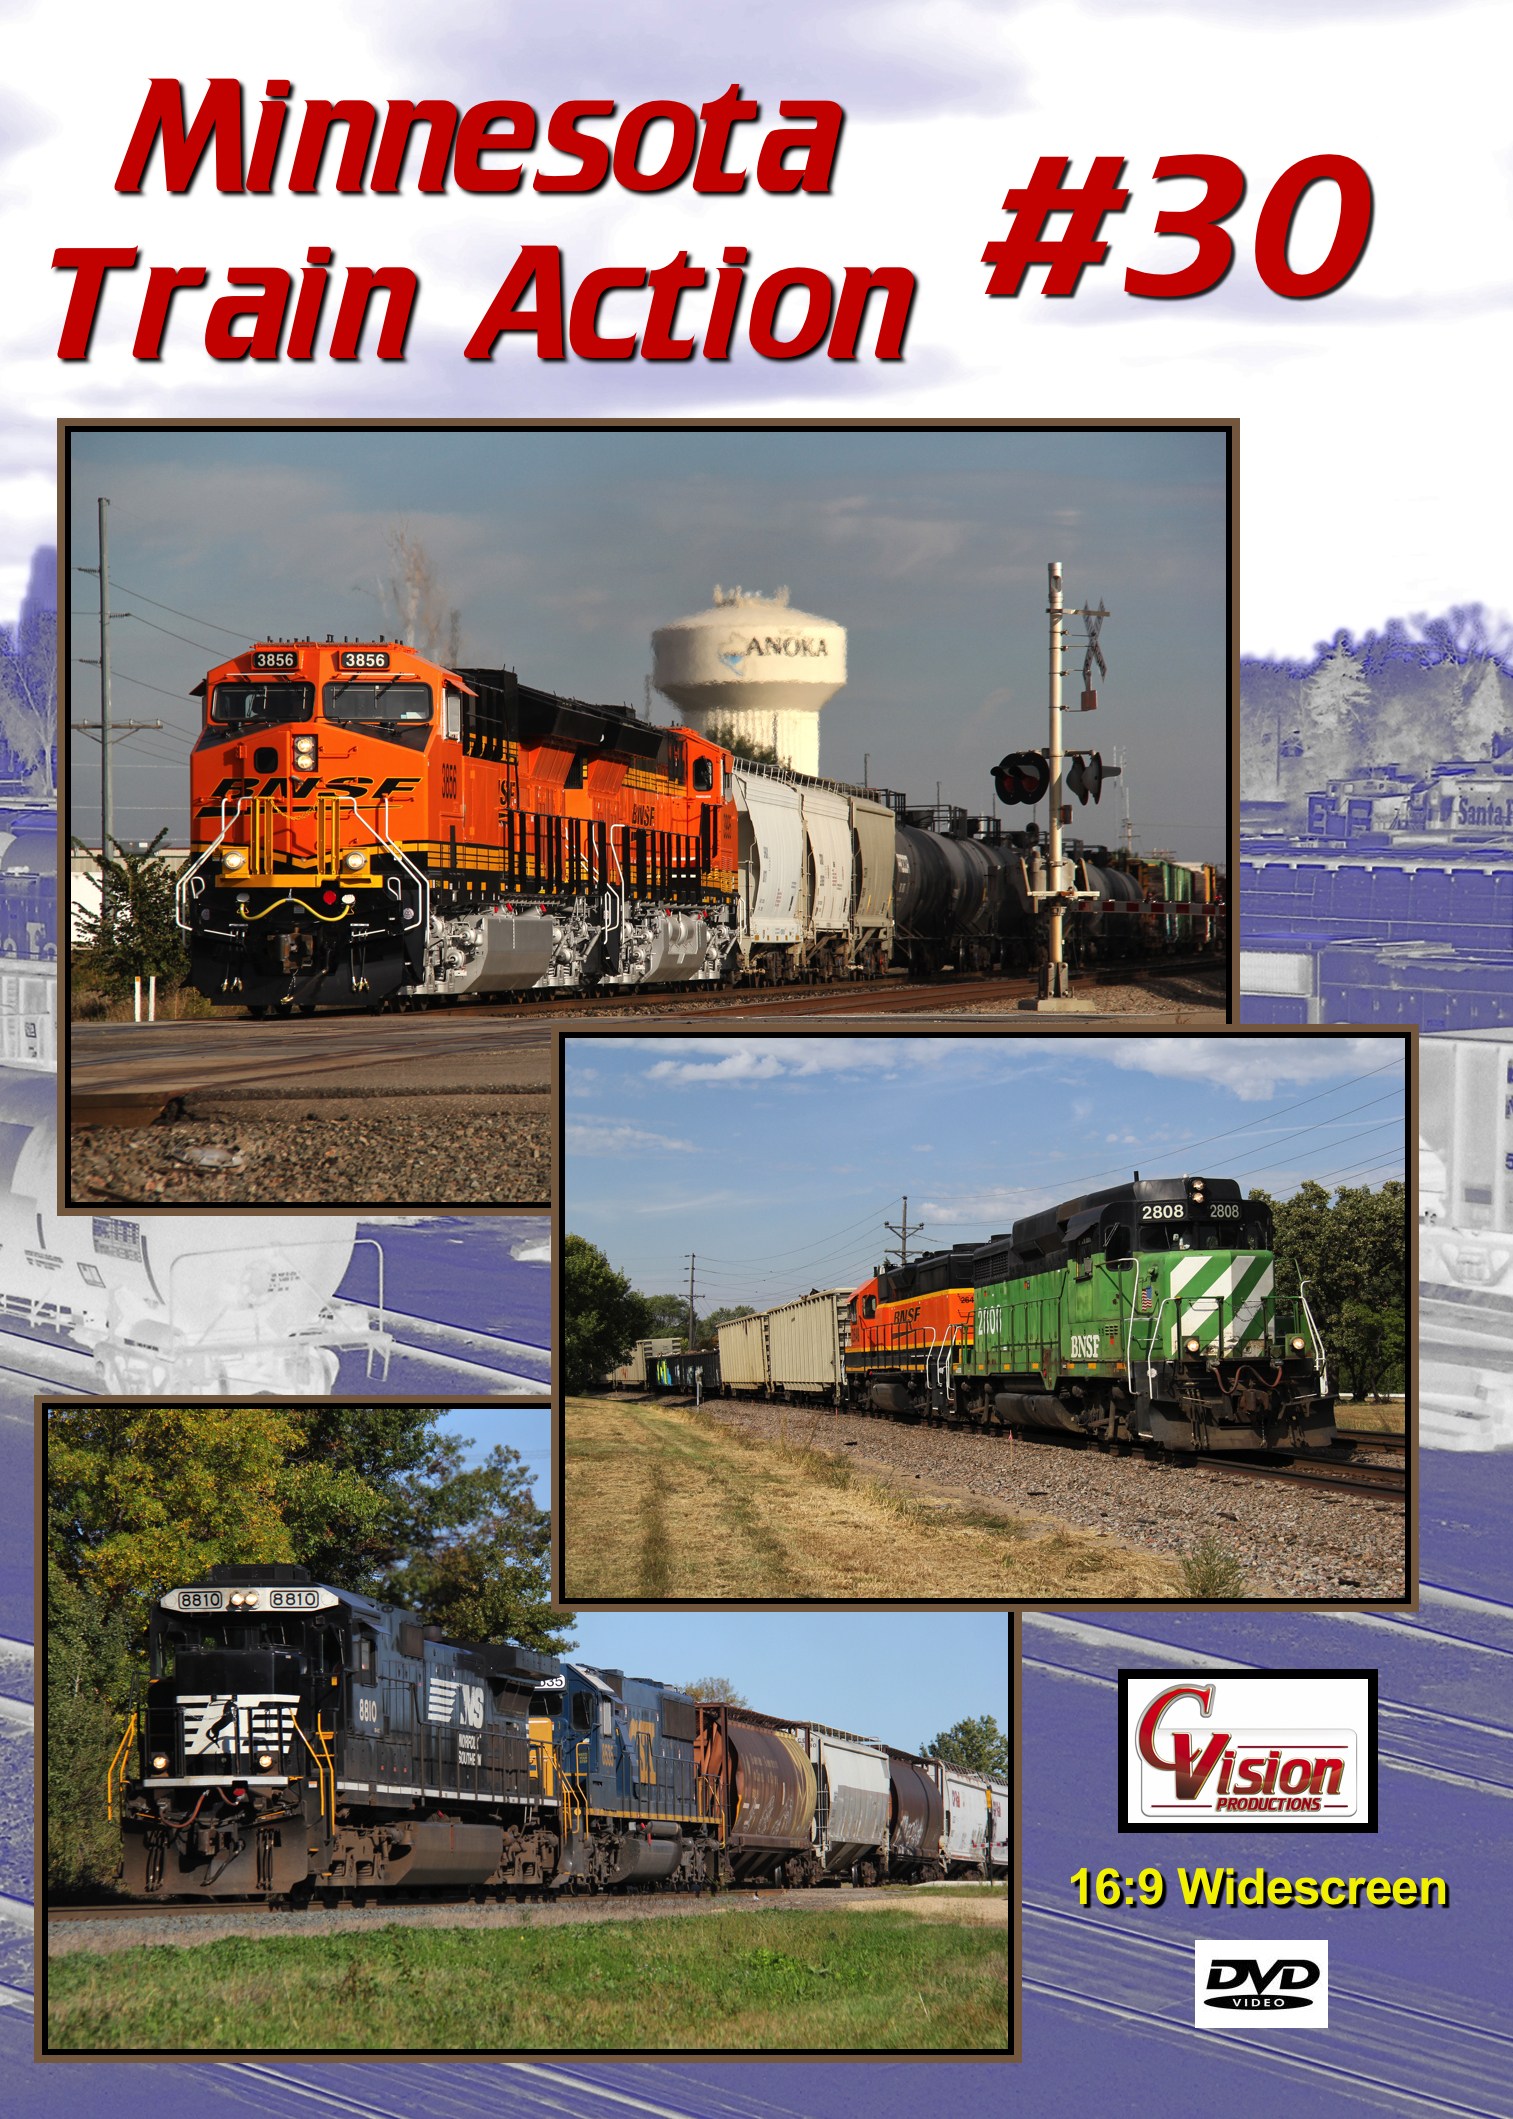 Minnesota Train Action Number 30 DVD C Vision Productions MTA30DVD